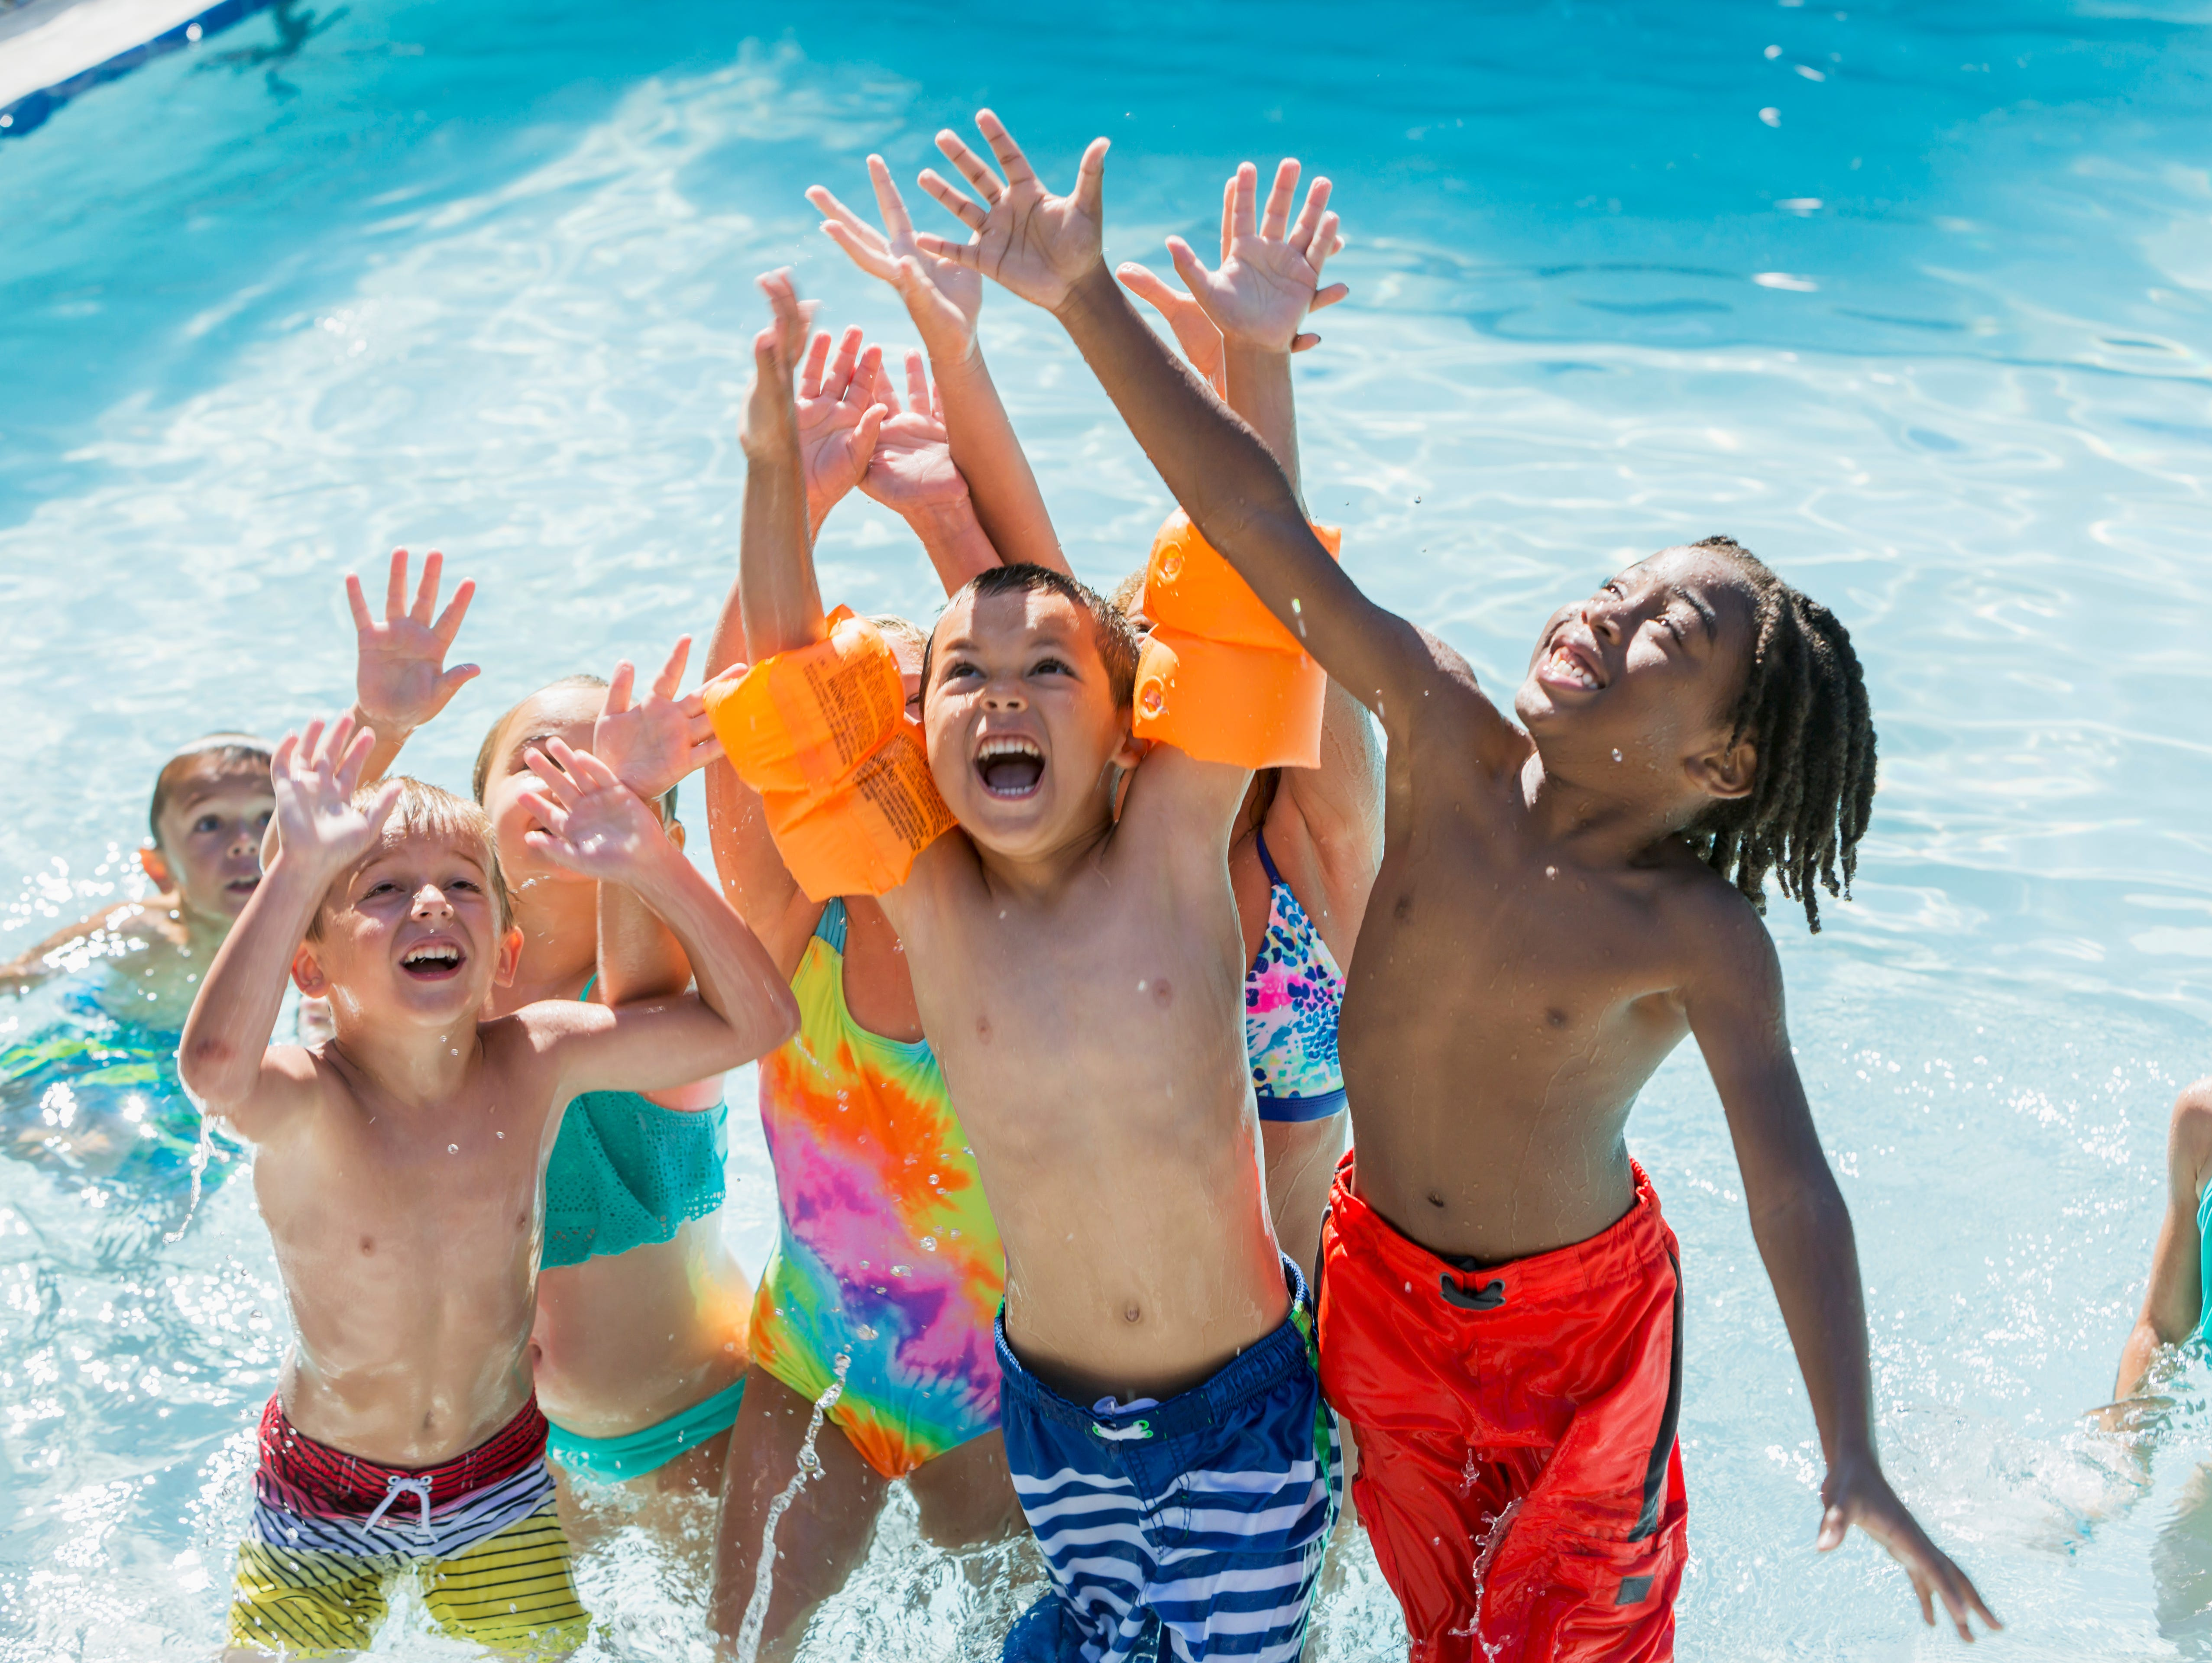 Enjoy your time by the pool with a Fun in the Sun Sweepstakes! Enter 6/5-6/24!